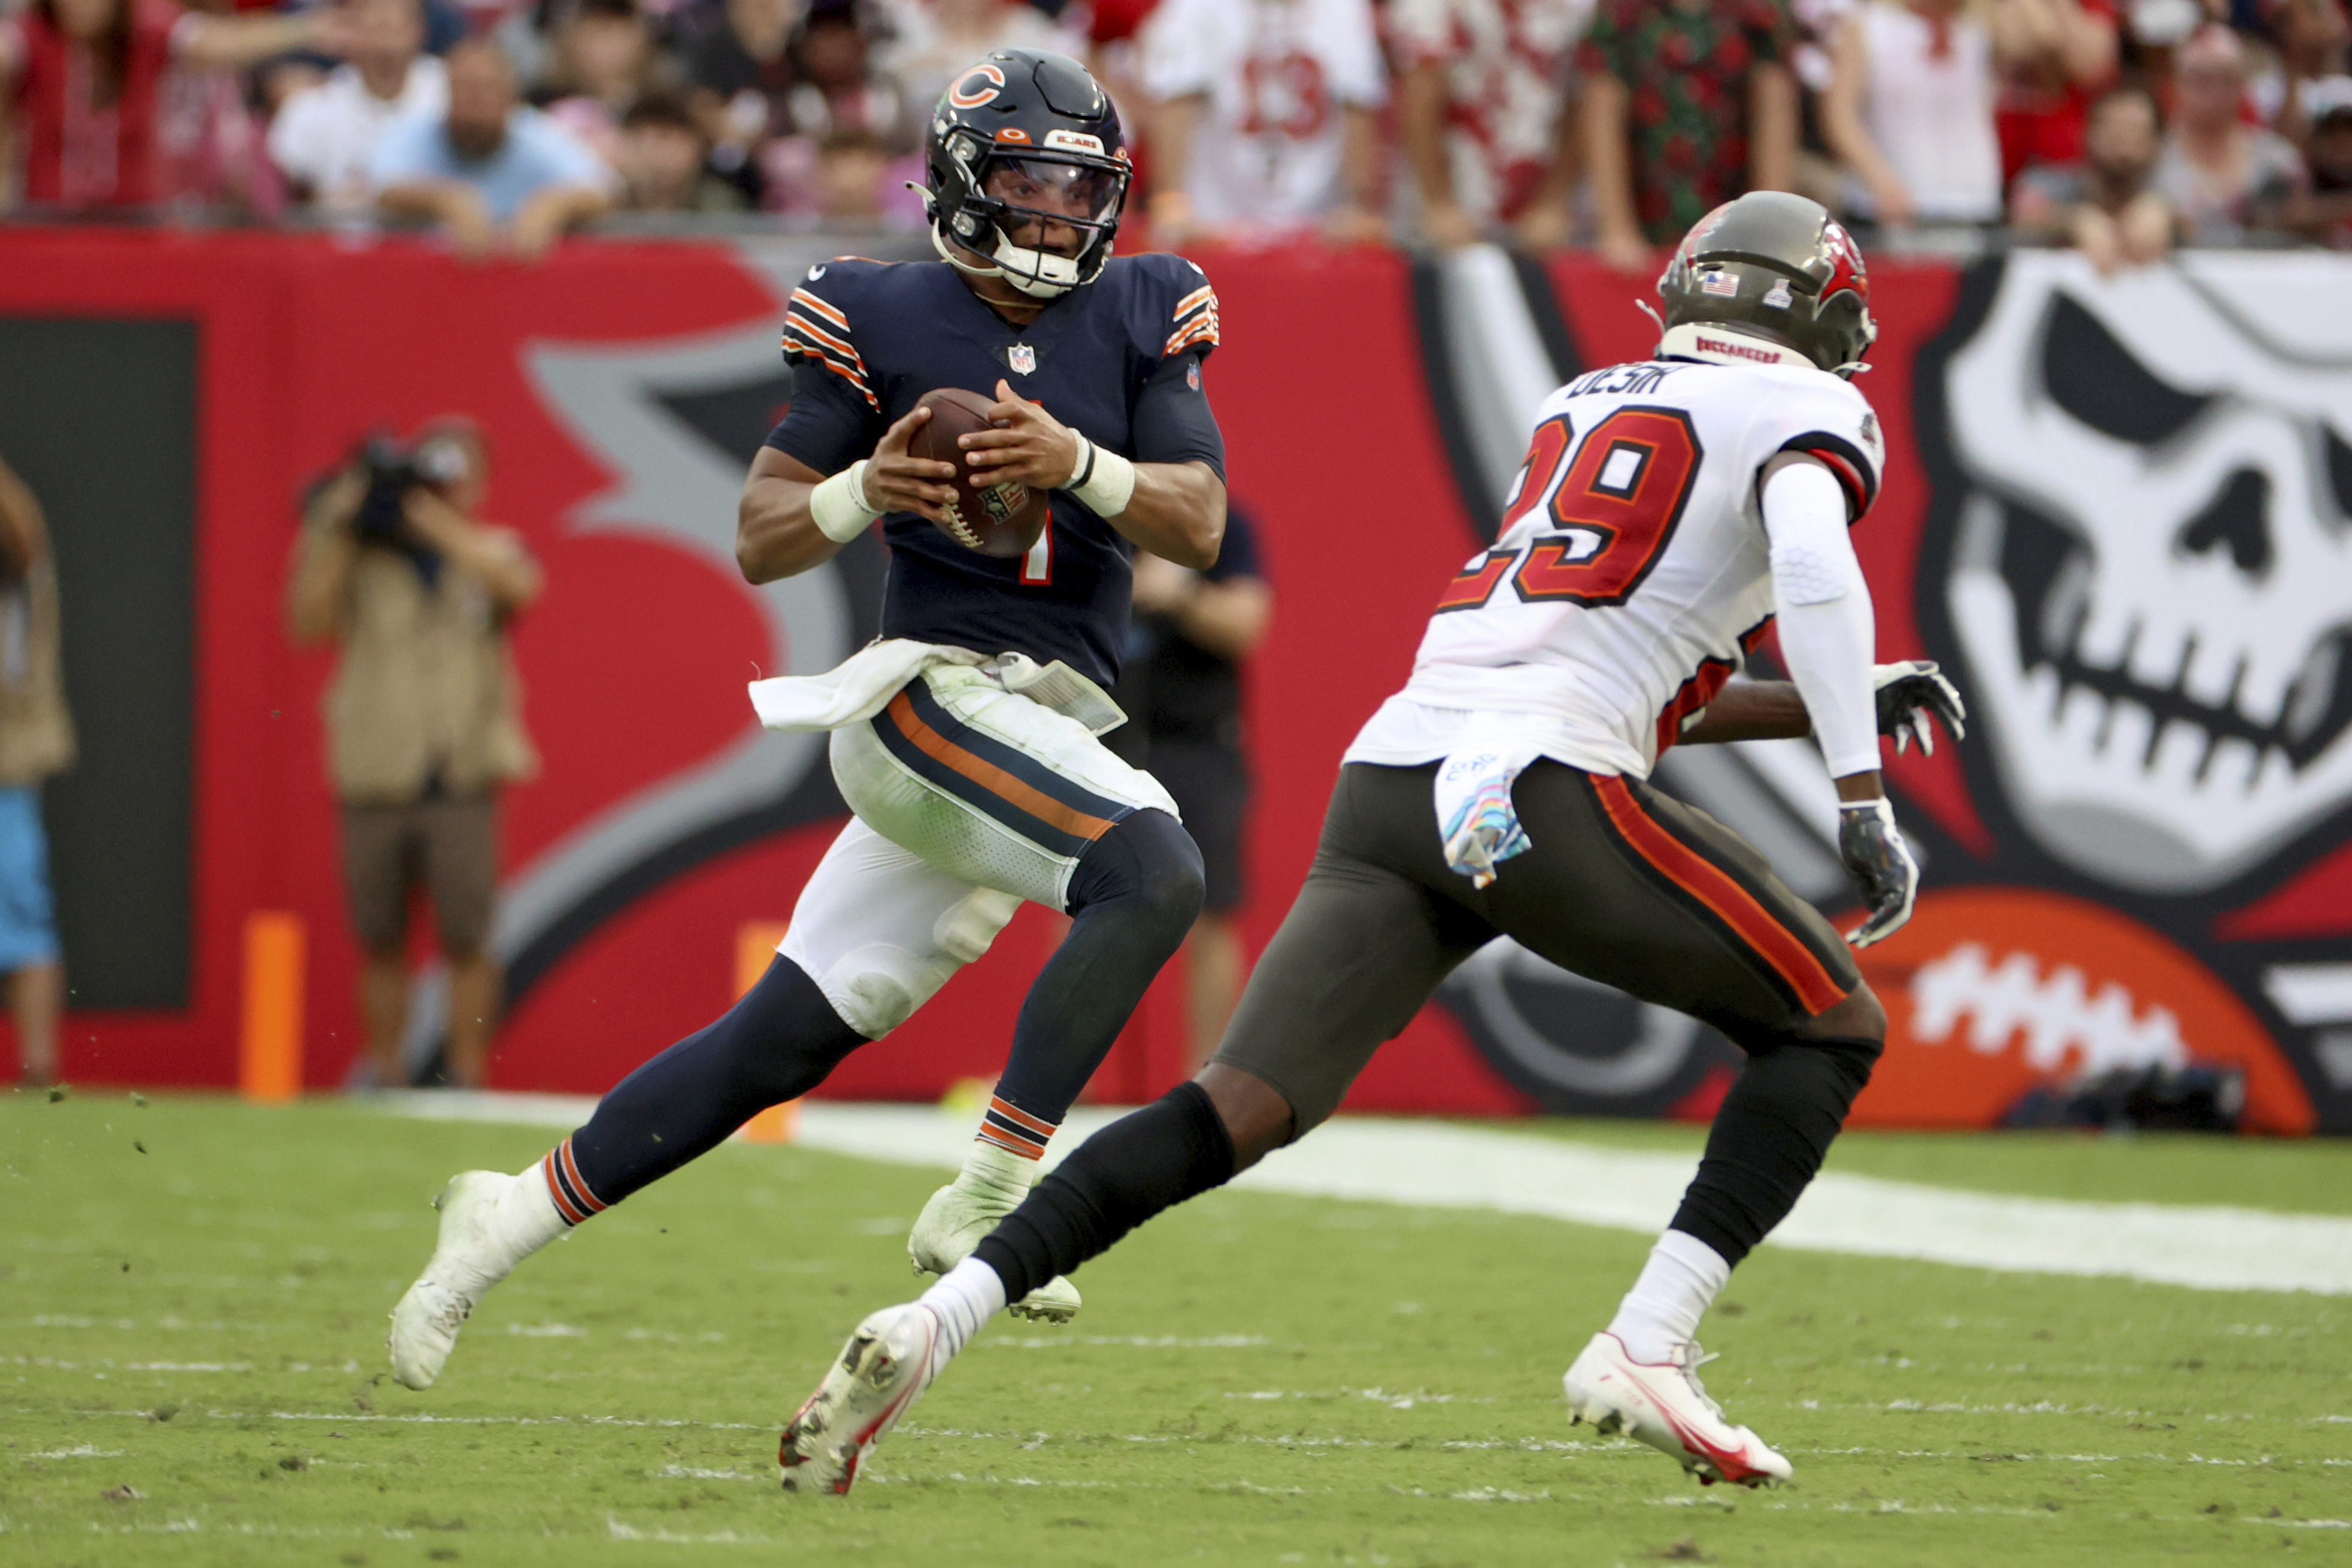 Bears rookie quarterback Justin Fields was sacked four times, fumbled three times — losing two — and threw three interceptions in a 38-3 loss to the Buccaneers on Sunday at Raymond James Stadium in Tampa, Fla.